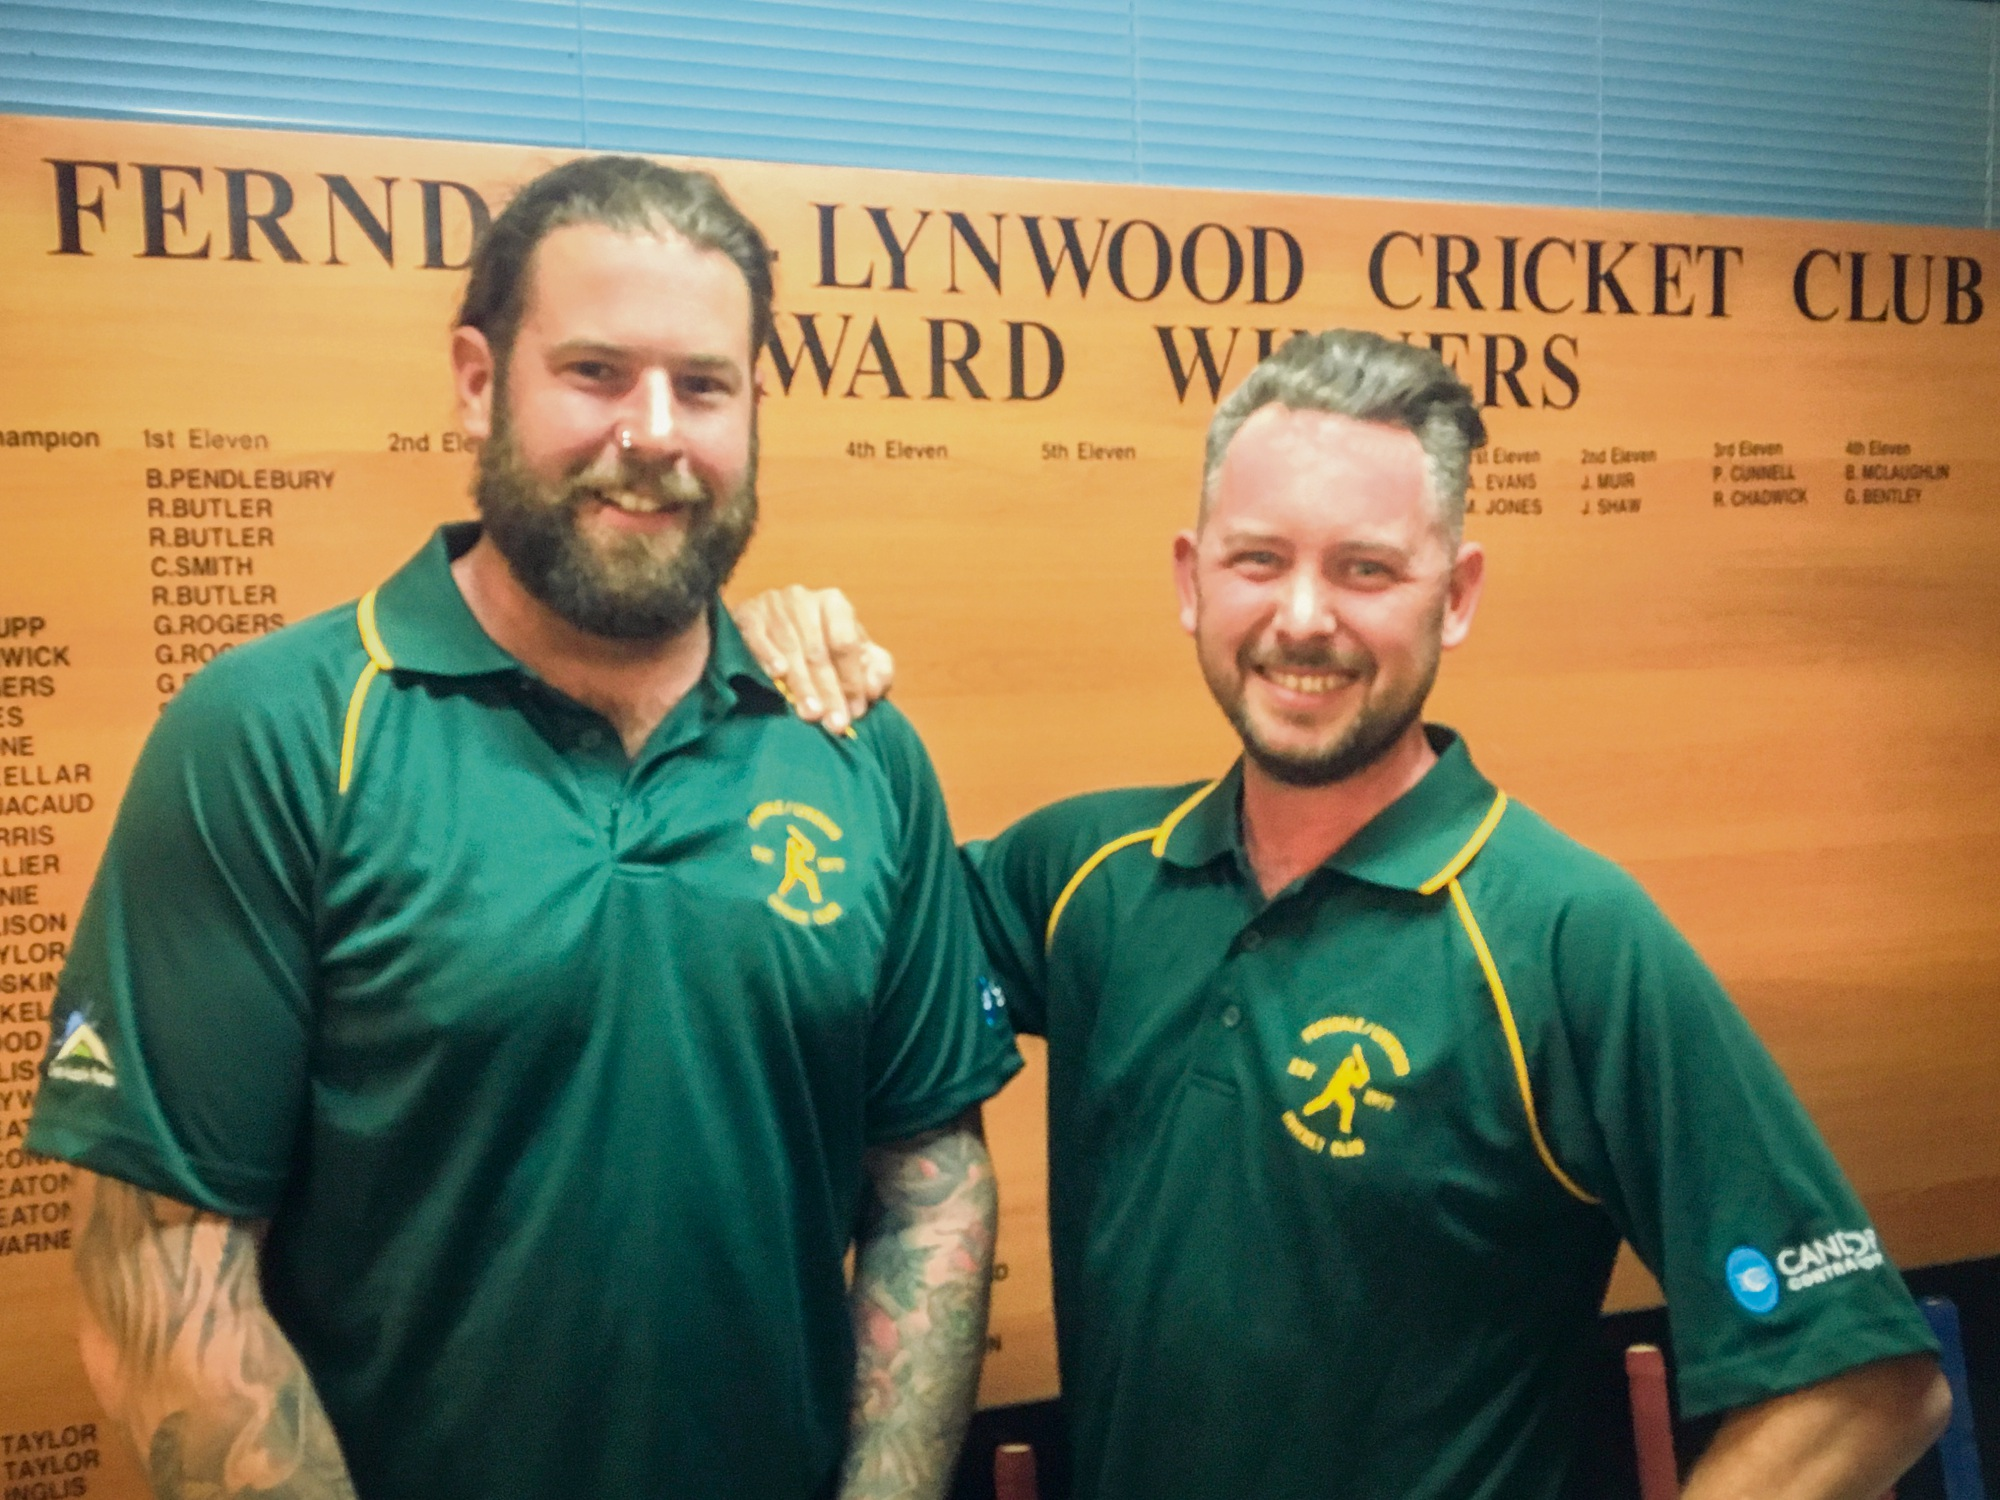 First grader Matt Jones (left) with Ferndale Lynwood Cricket Club's new head coach Alan Zanich.